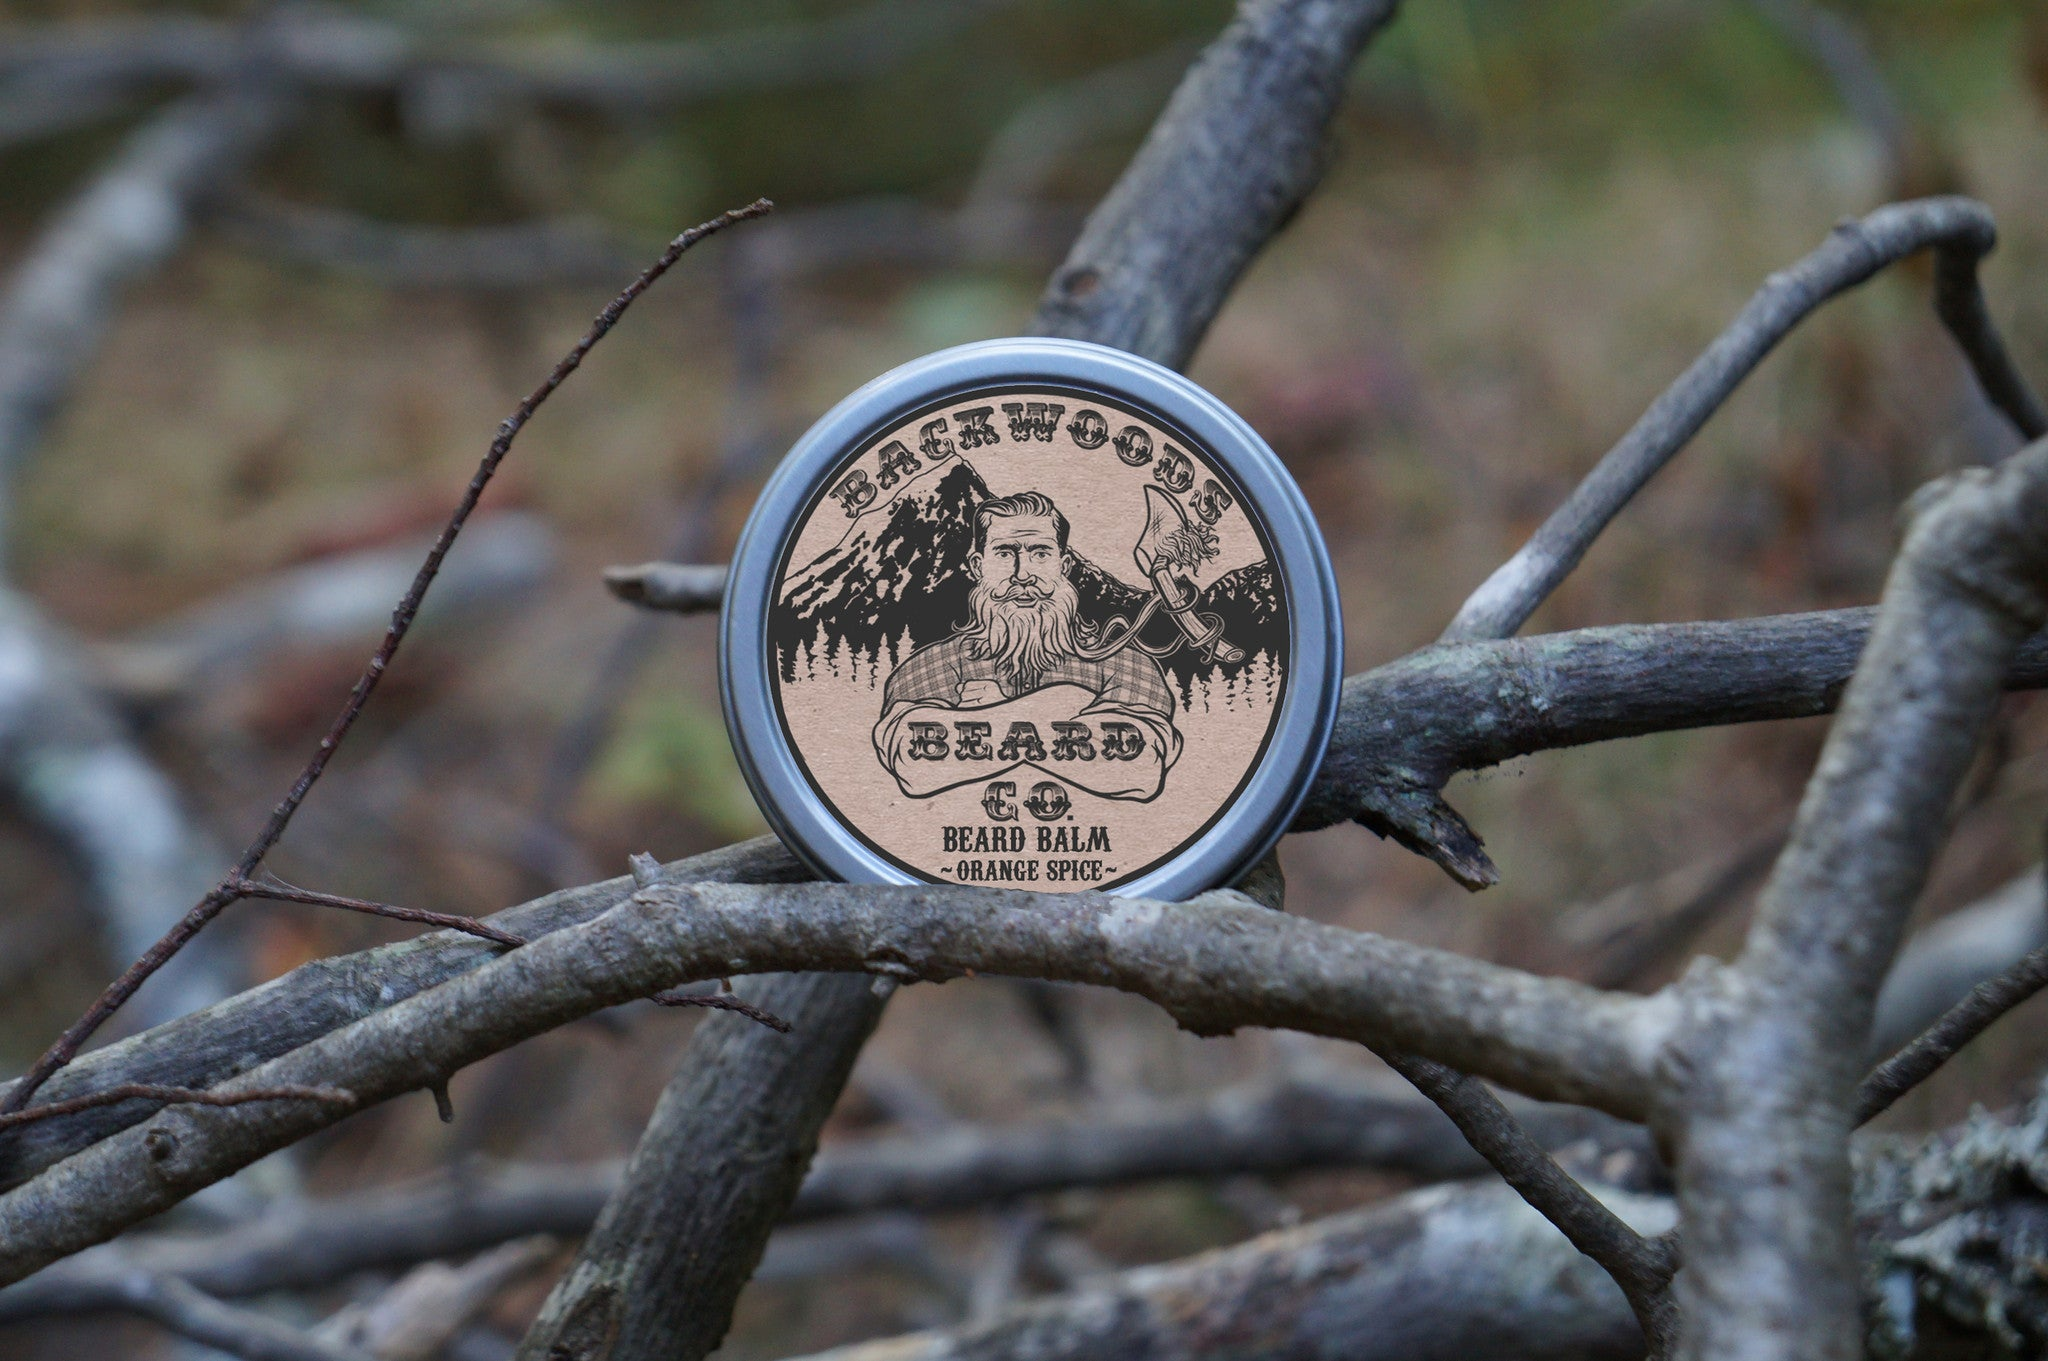 Orange Spice Beard Balm